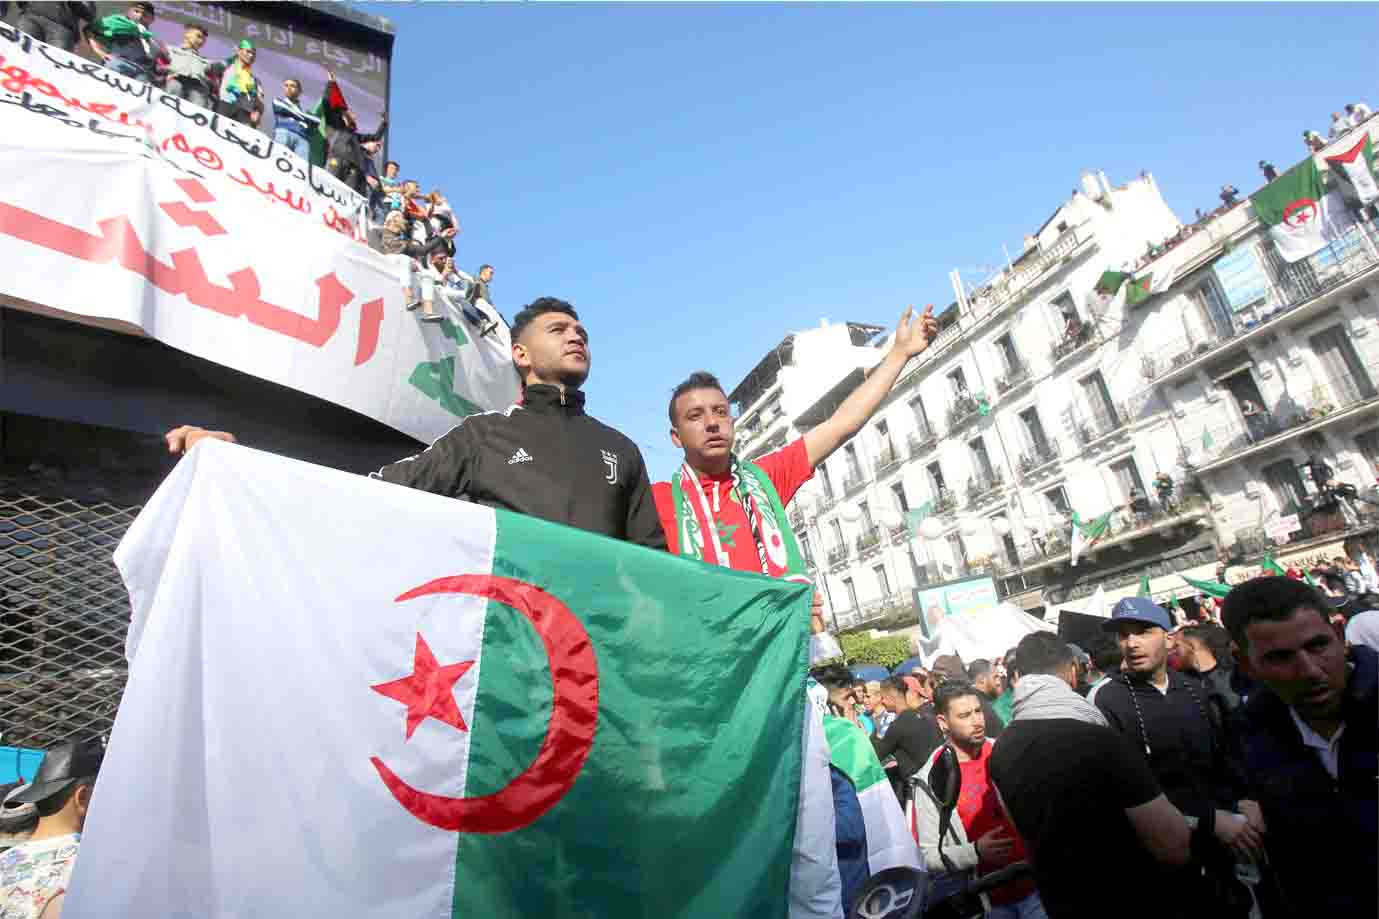 Men carry a national flag during a protest demanding radical change in Algiers, April 5. (Reuters)